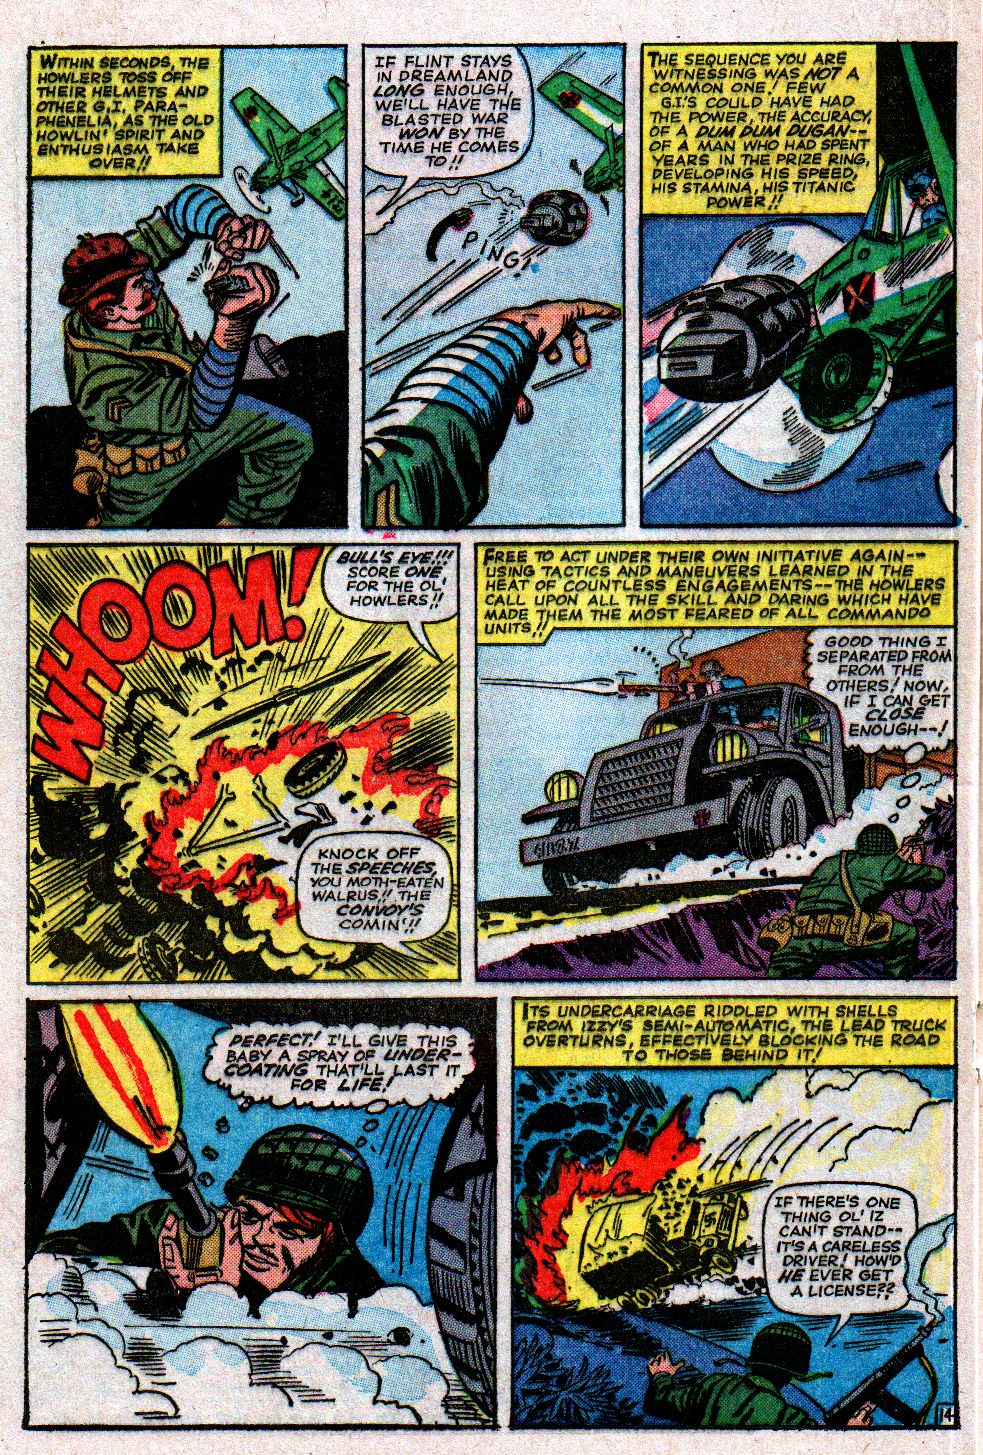 Read online Sgt. Fury comic -  Issue #11 - 20